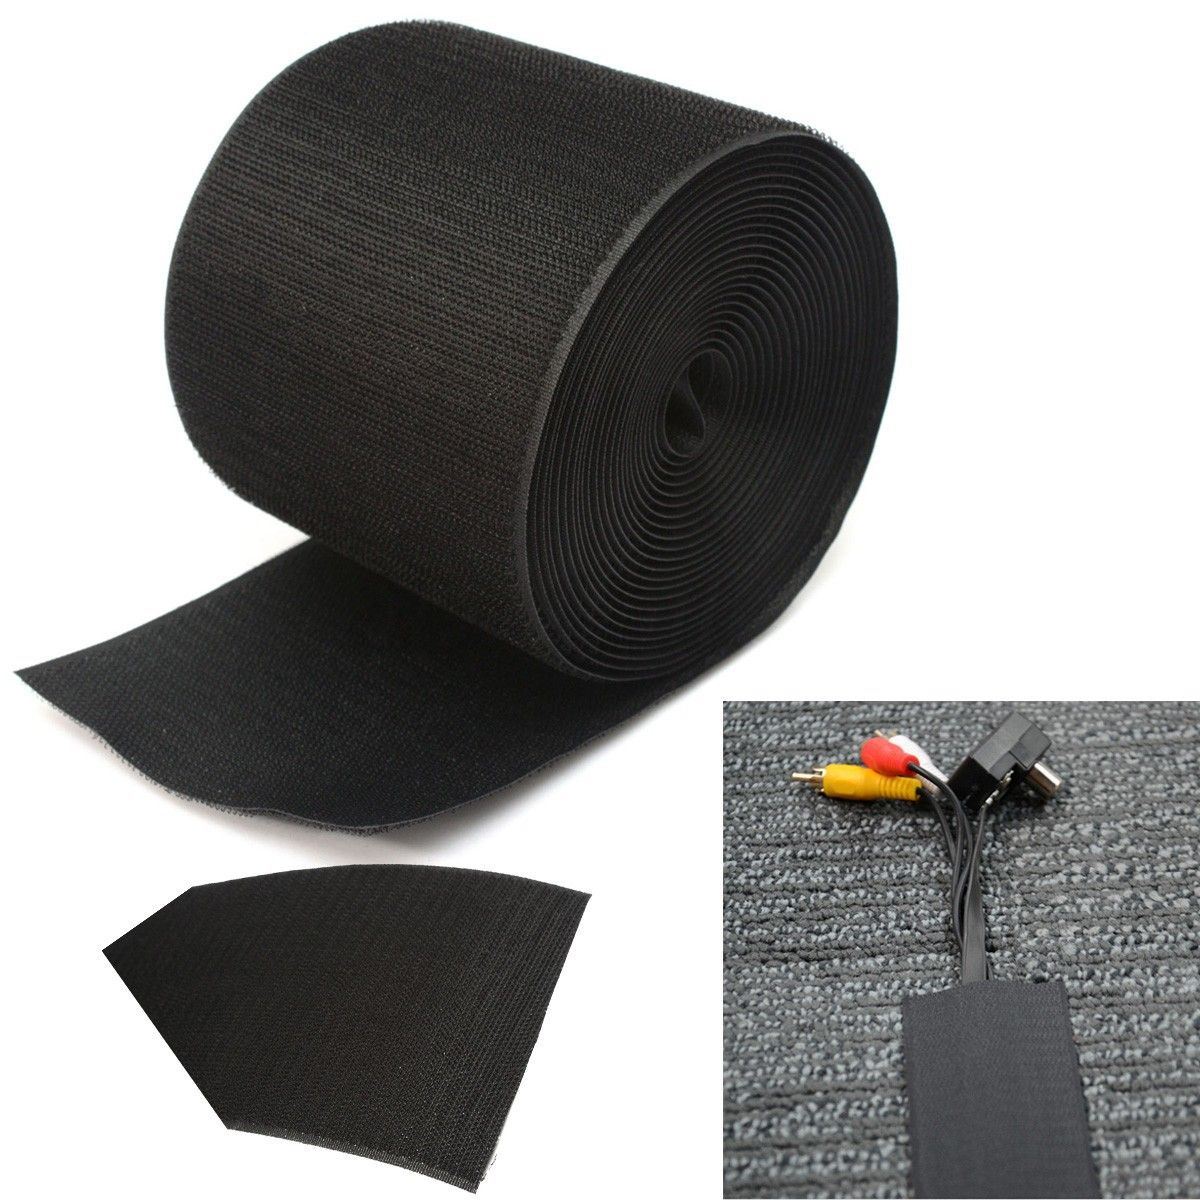 4 cable management organizer floor carpet nylon cover 5m wire sleeve protector ebay. Black Bedroom Furniture Sets. Home Design Ideas